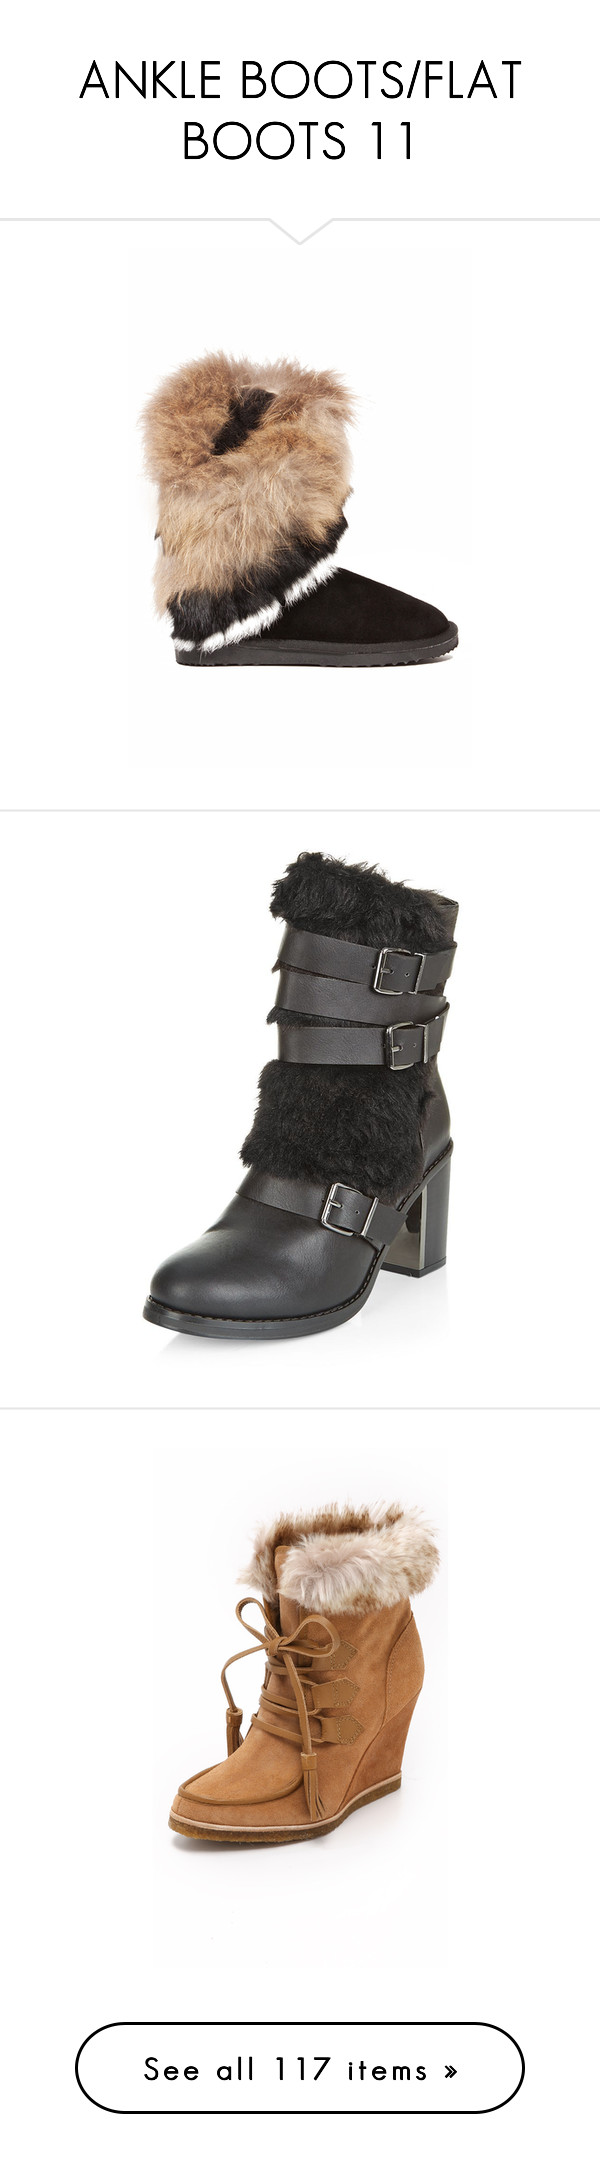 """ANKLE BOOTS/FLAT BOOTS 11"" by kazza-smith ❤ liked on Polyvore featuring shoes, boots, black, mid-calf boots, black round toe boots, low heel boots, black boots, black mid boots, black low heel boots and black faux fur boots"